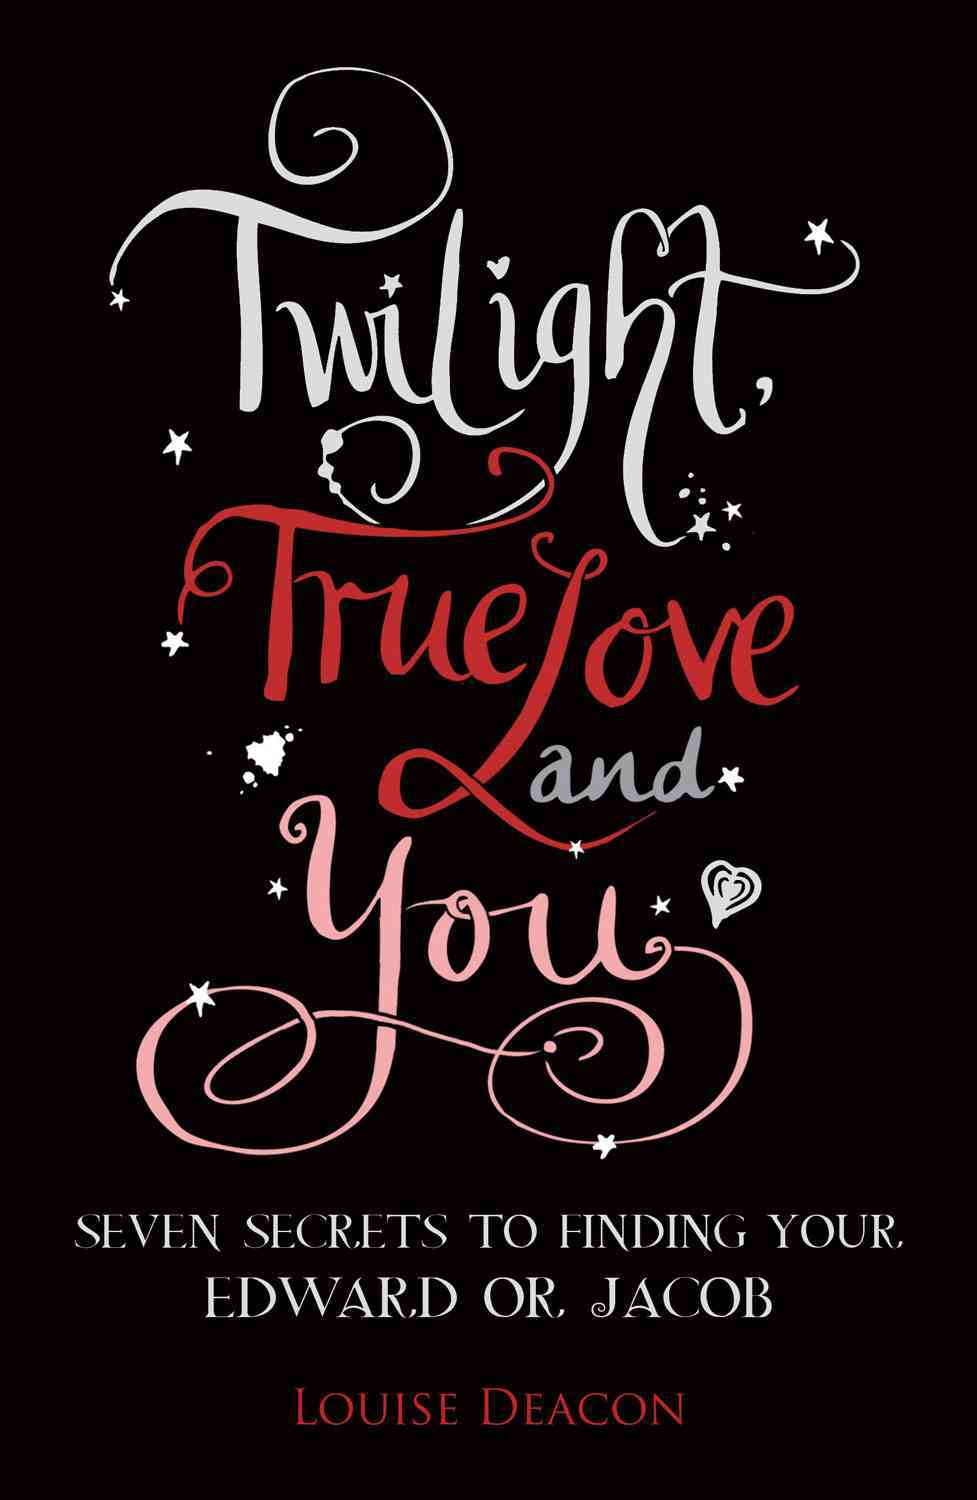 Twilight, True Love and You: Seven Secret Steps to Finding Your Edward or Jacob (Paperback)